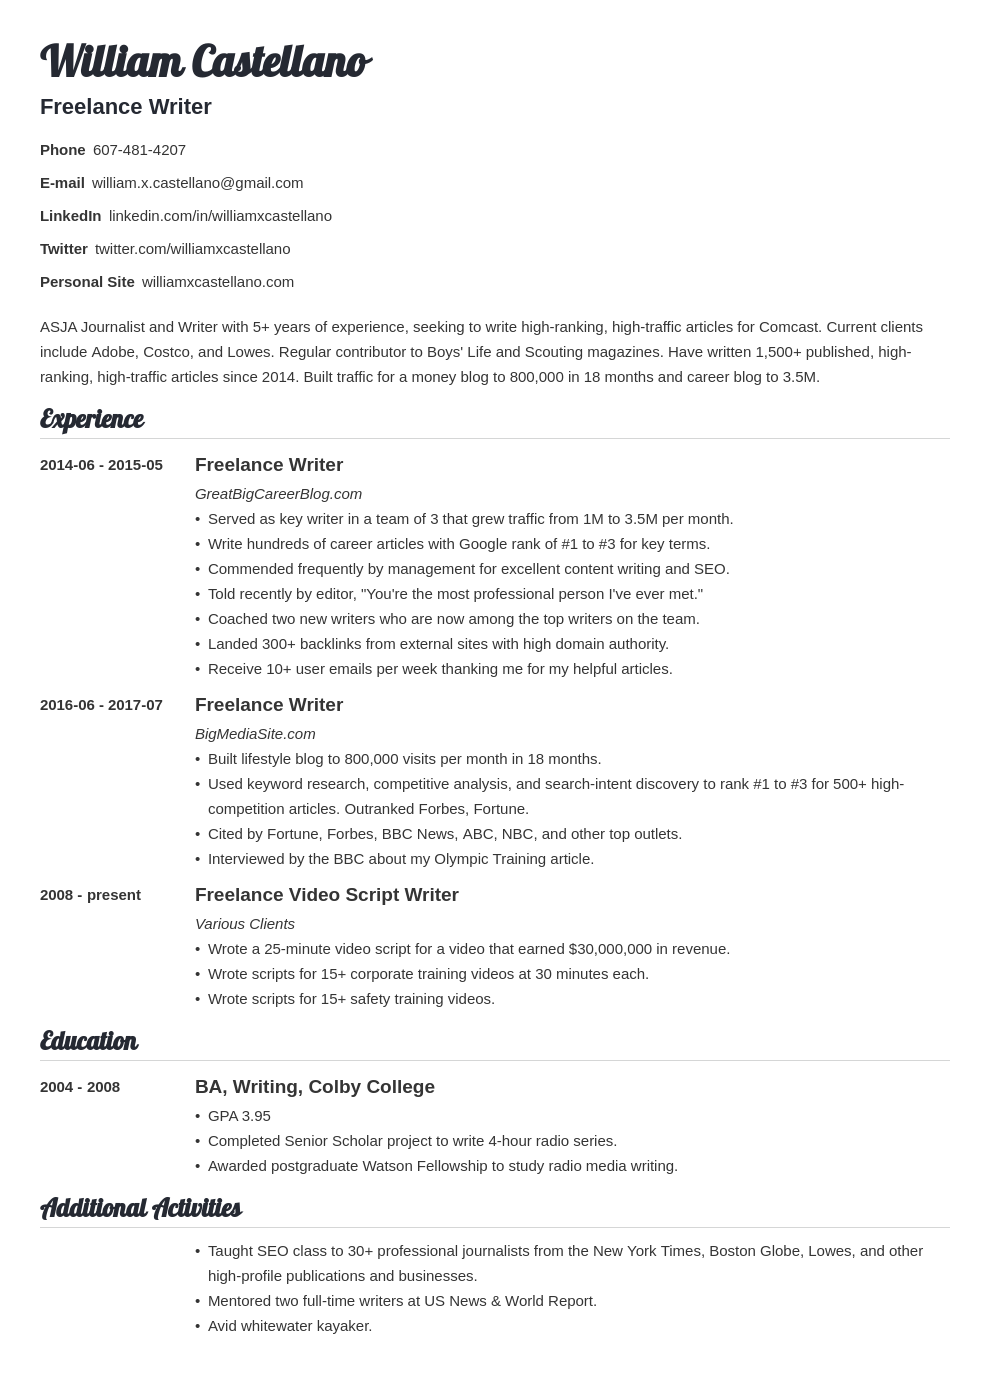 Freelancing experience in resume consulting private equity resume